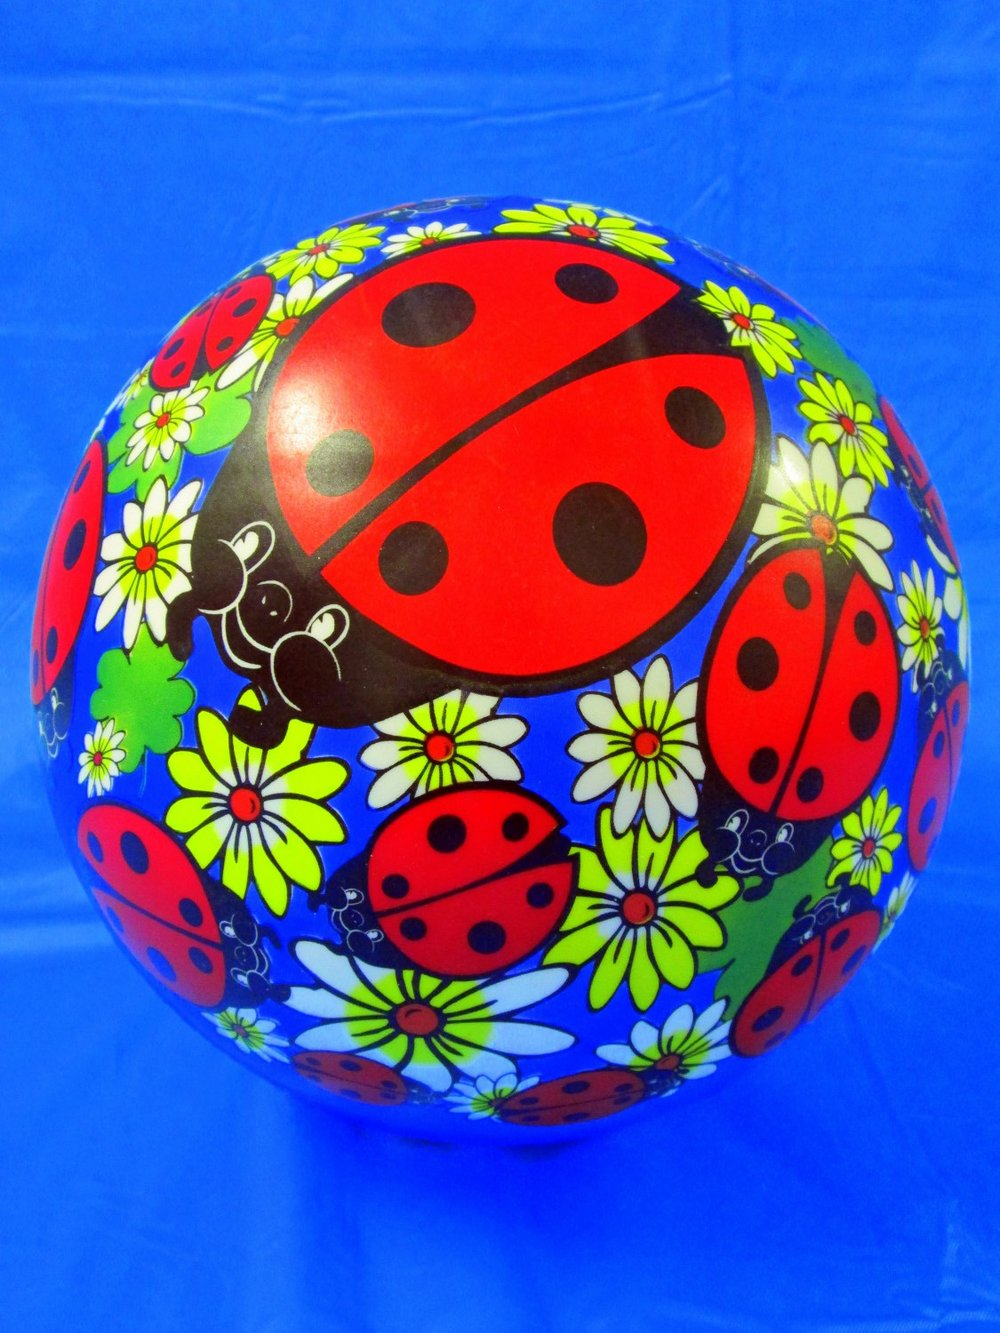 Eder-Ball-with-Lady-Bugs-curate.jpg